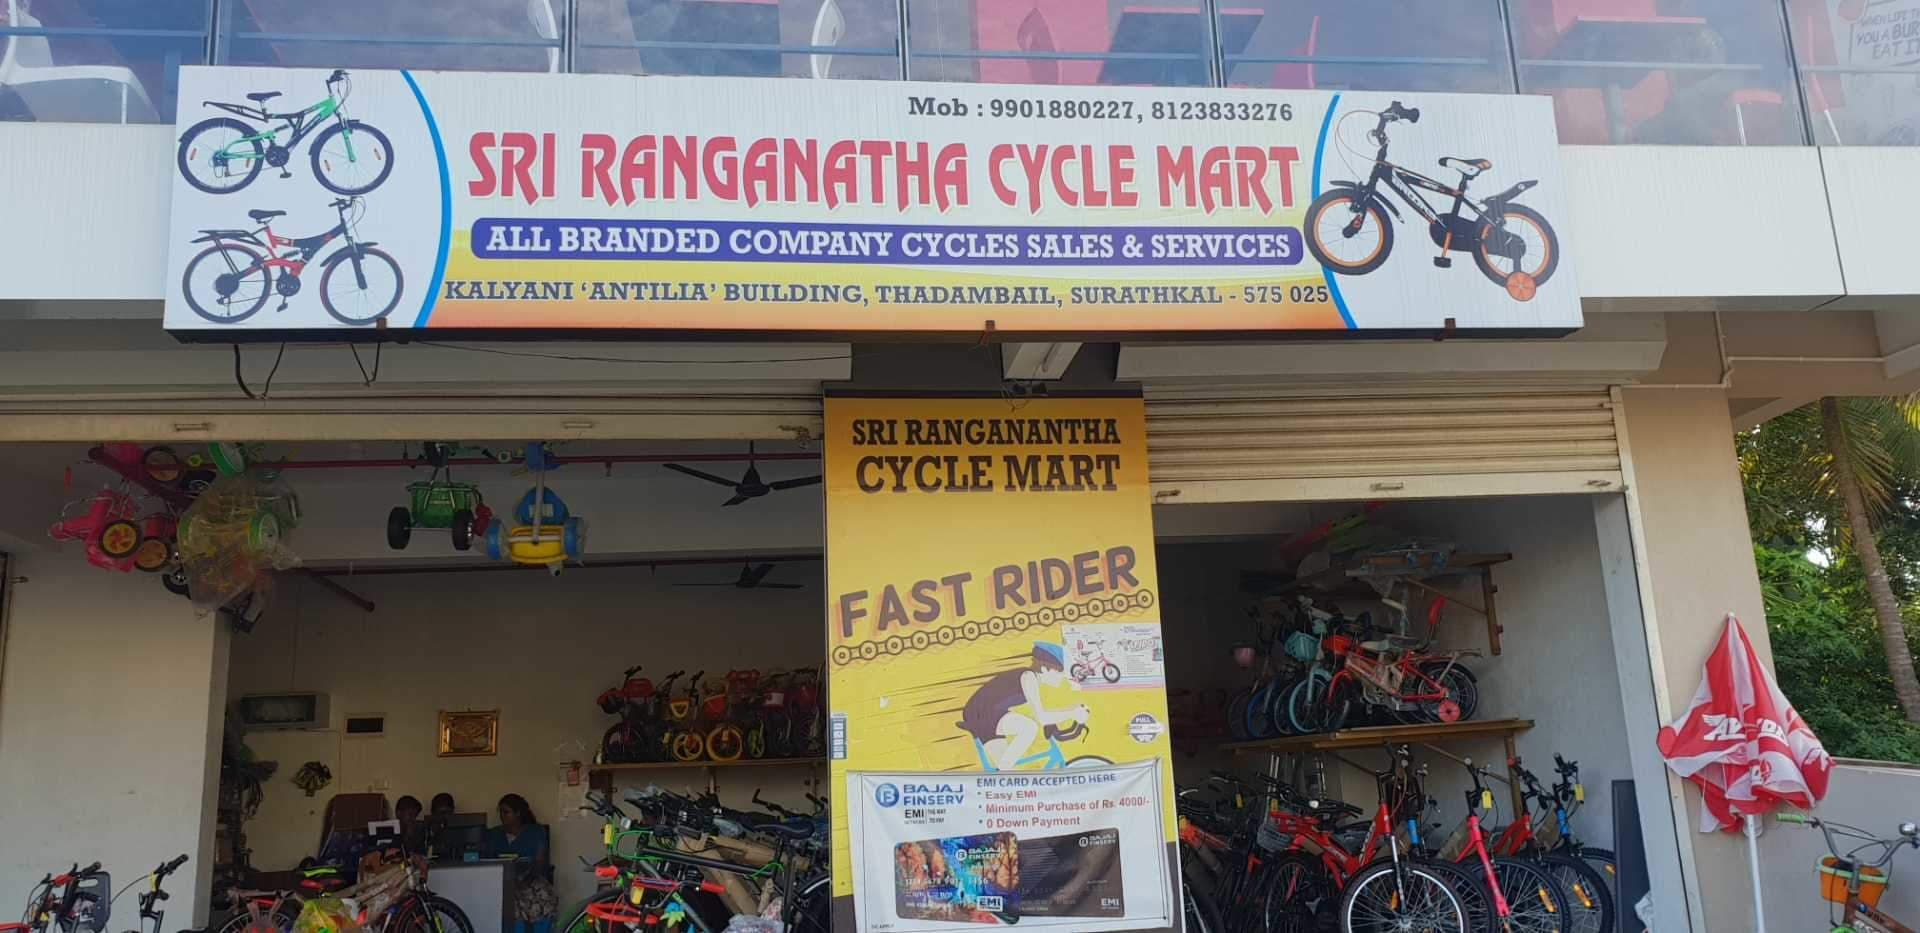 Top 10 Bicycle Repair & Services in Mangalore - Best Cycle